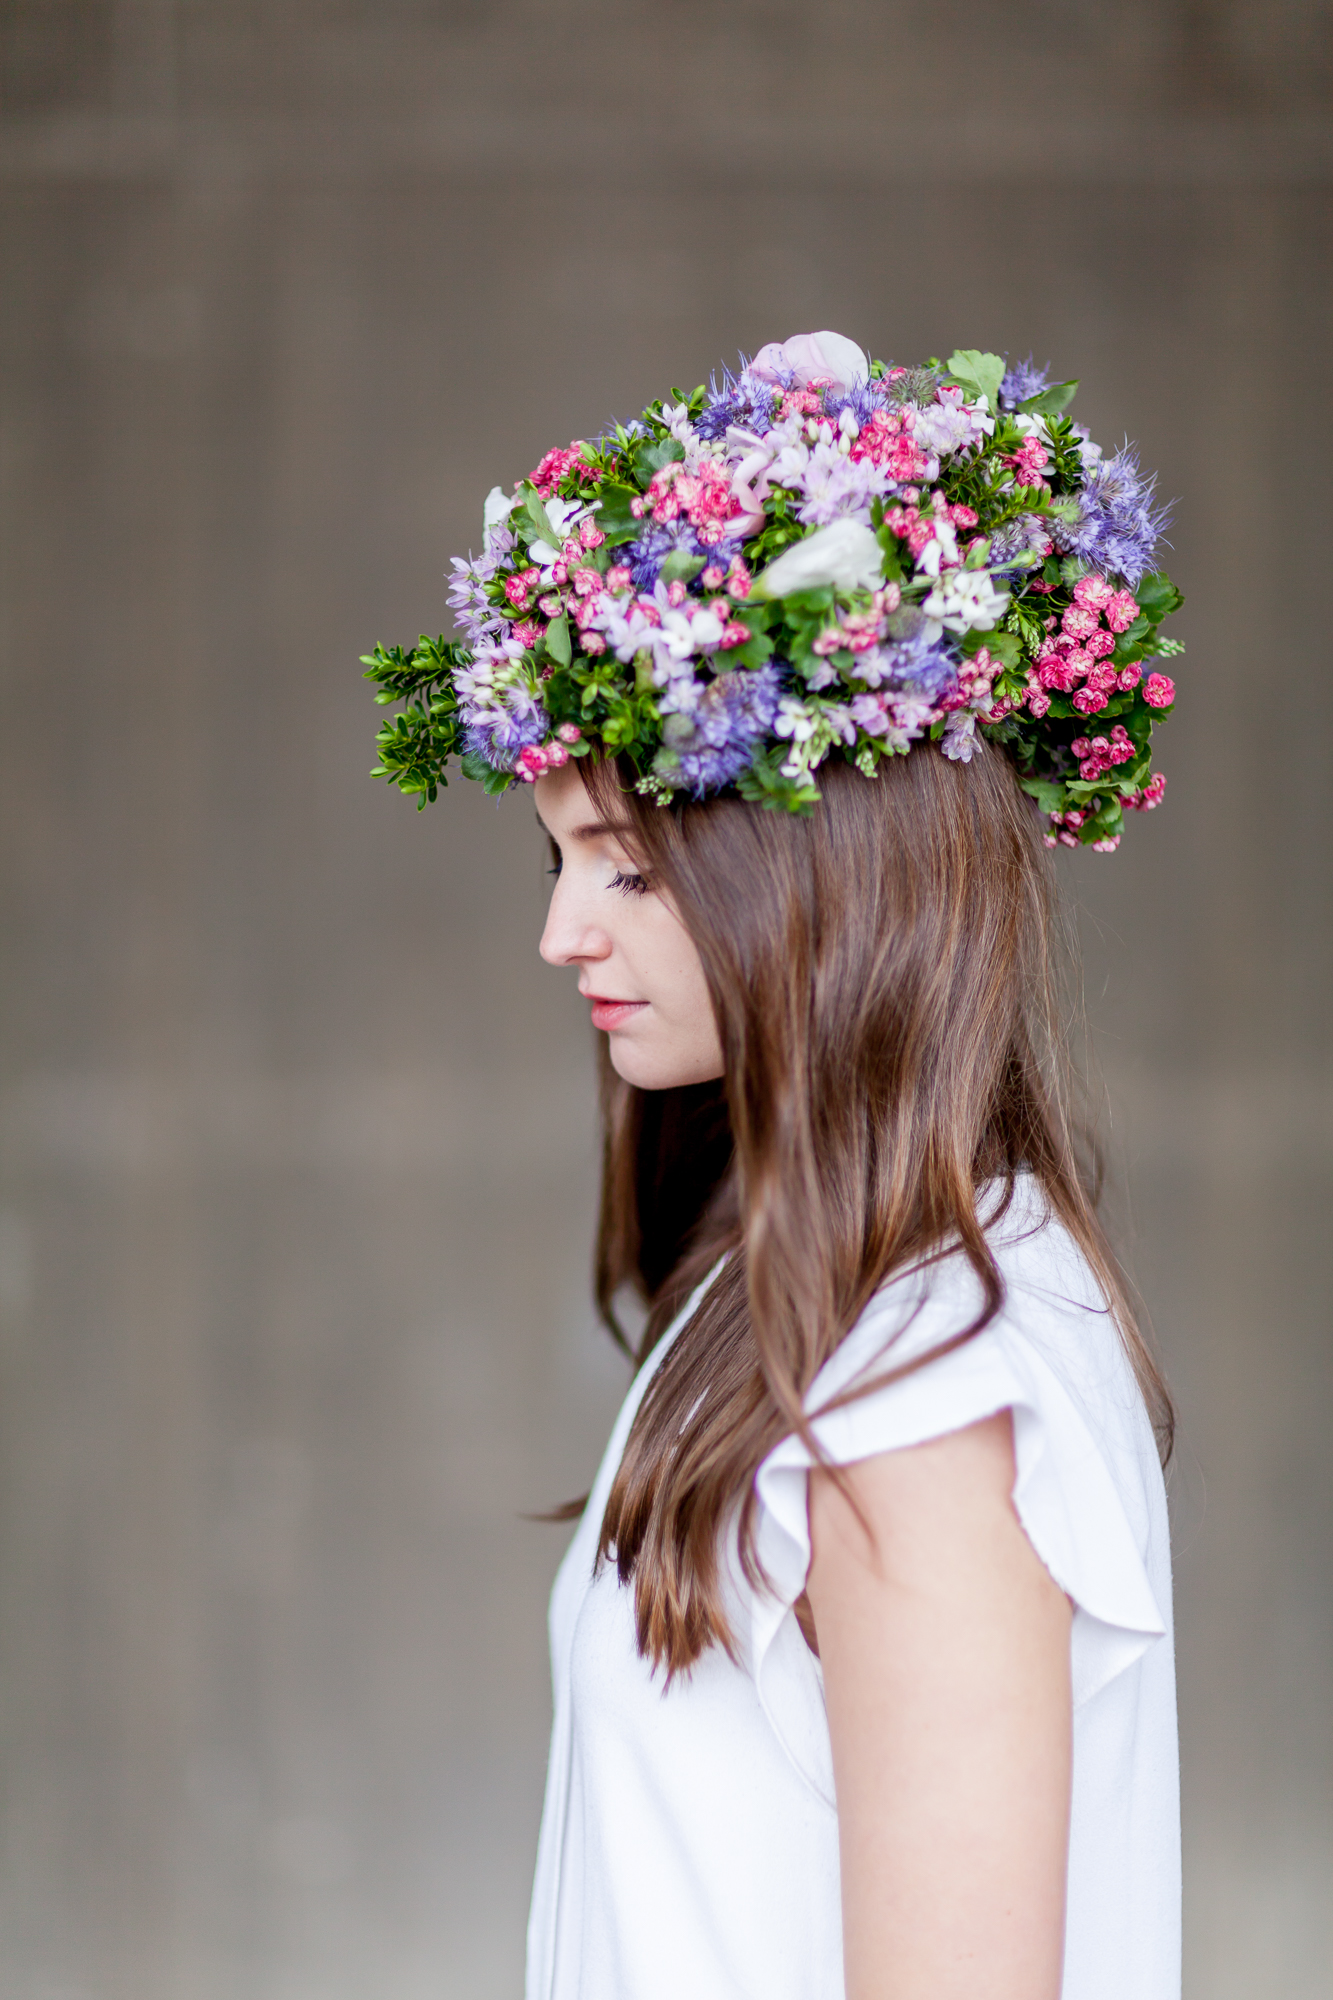 Day 2 of British Flowers Week 2016, featuring a cycle helmet created by Florence Kennedy of Petalon, presented to you by New Covent Garden Flower Market